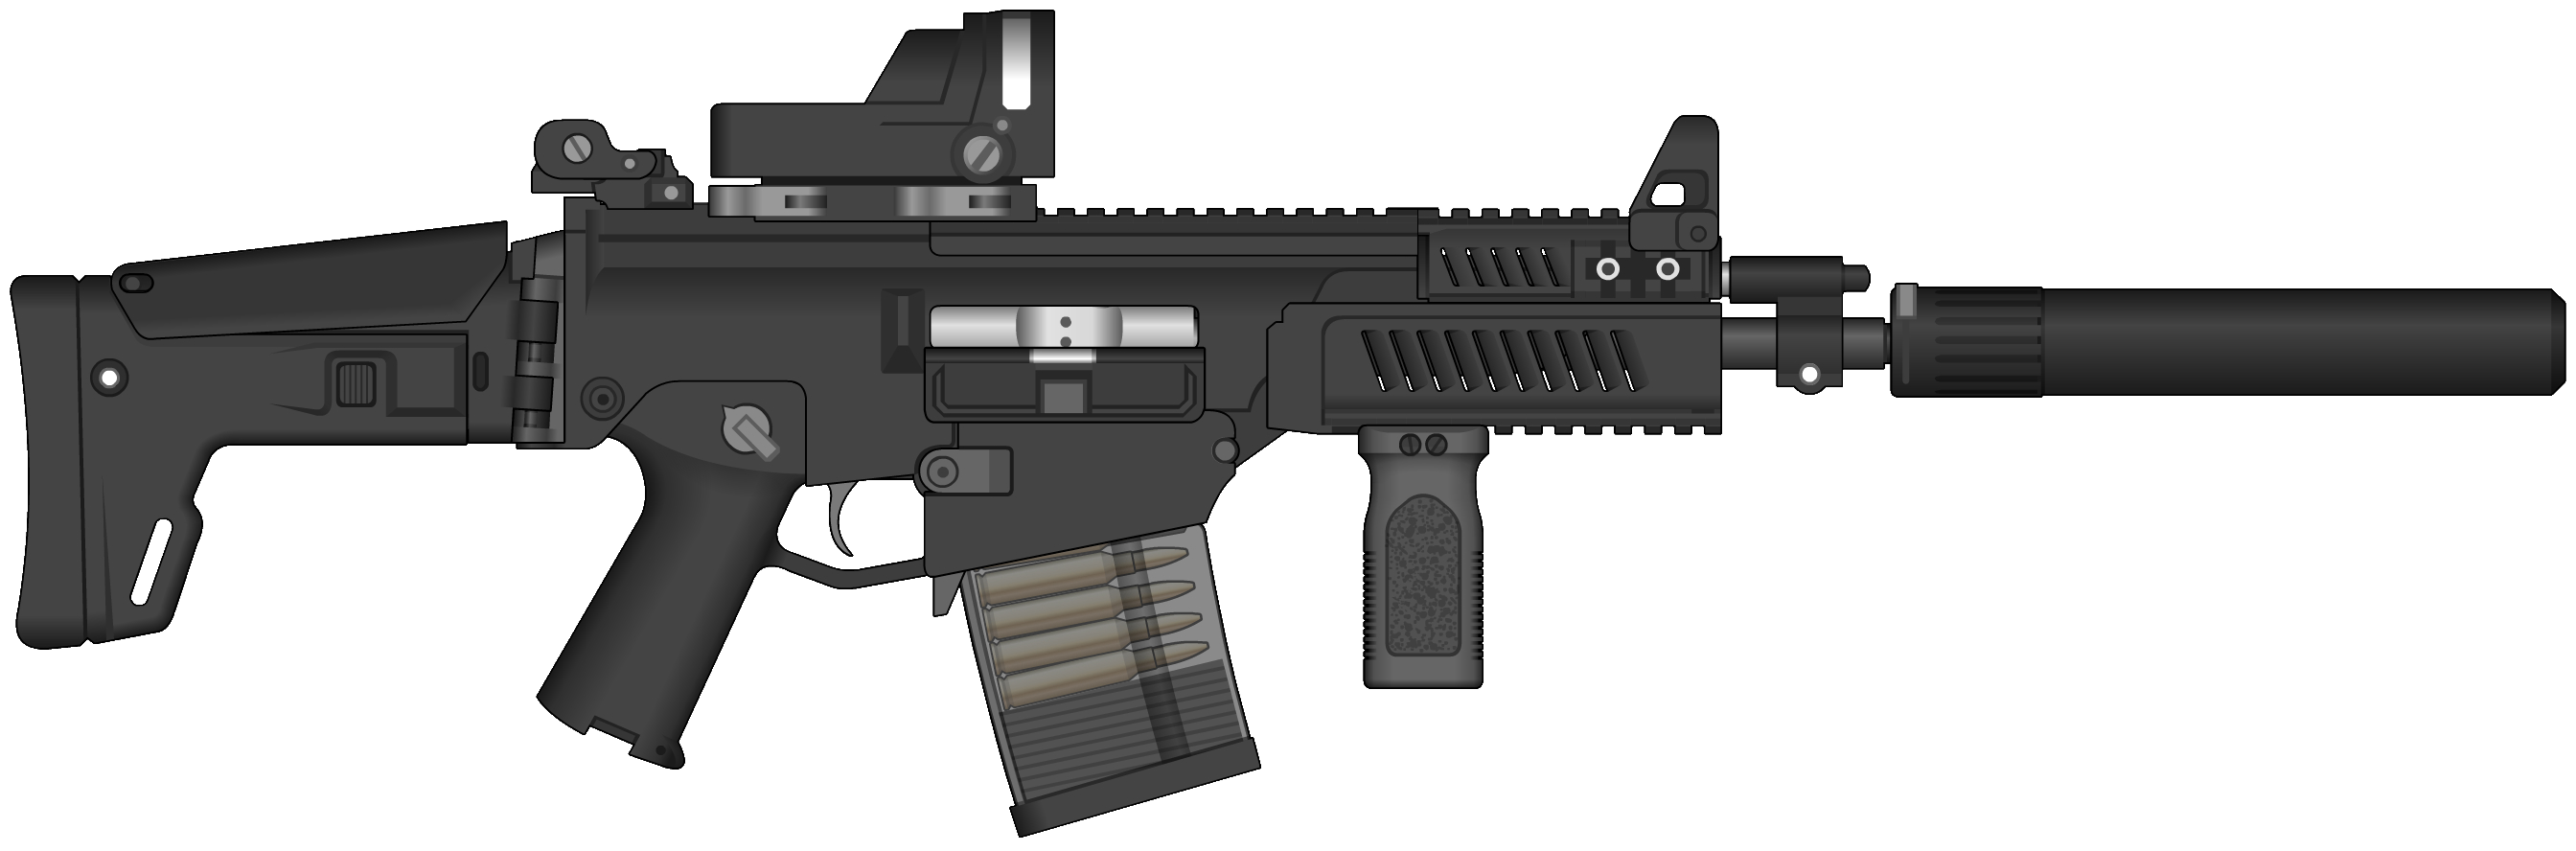 Now you can download Assault Rifle Icon PNG